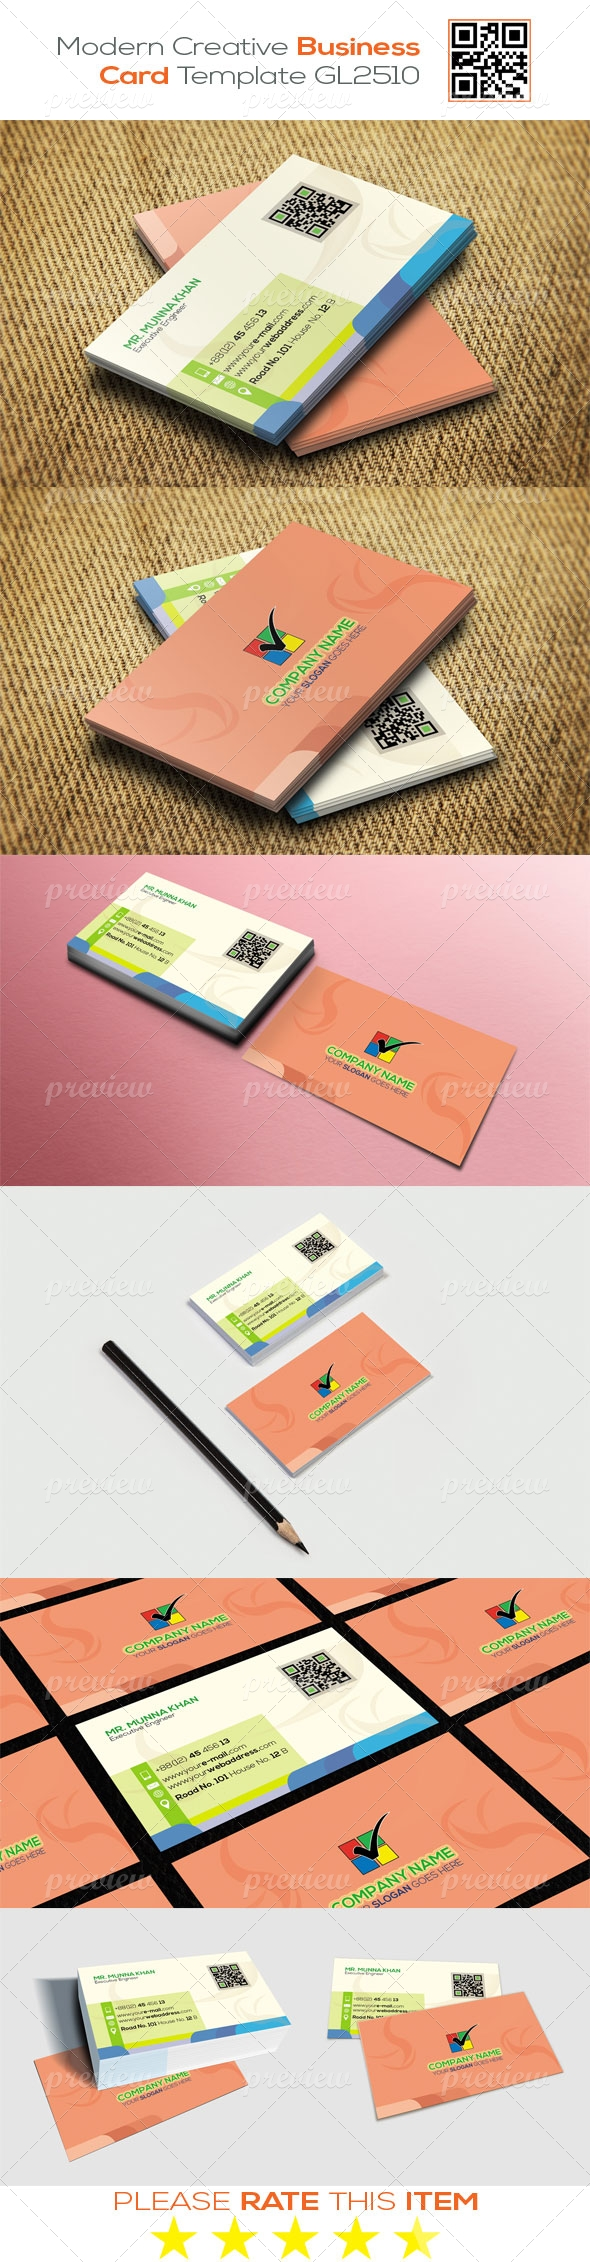 Modern Creative Business Card Template GL2510